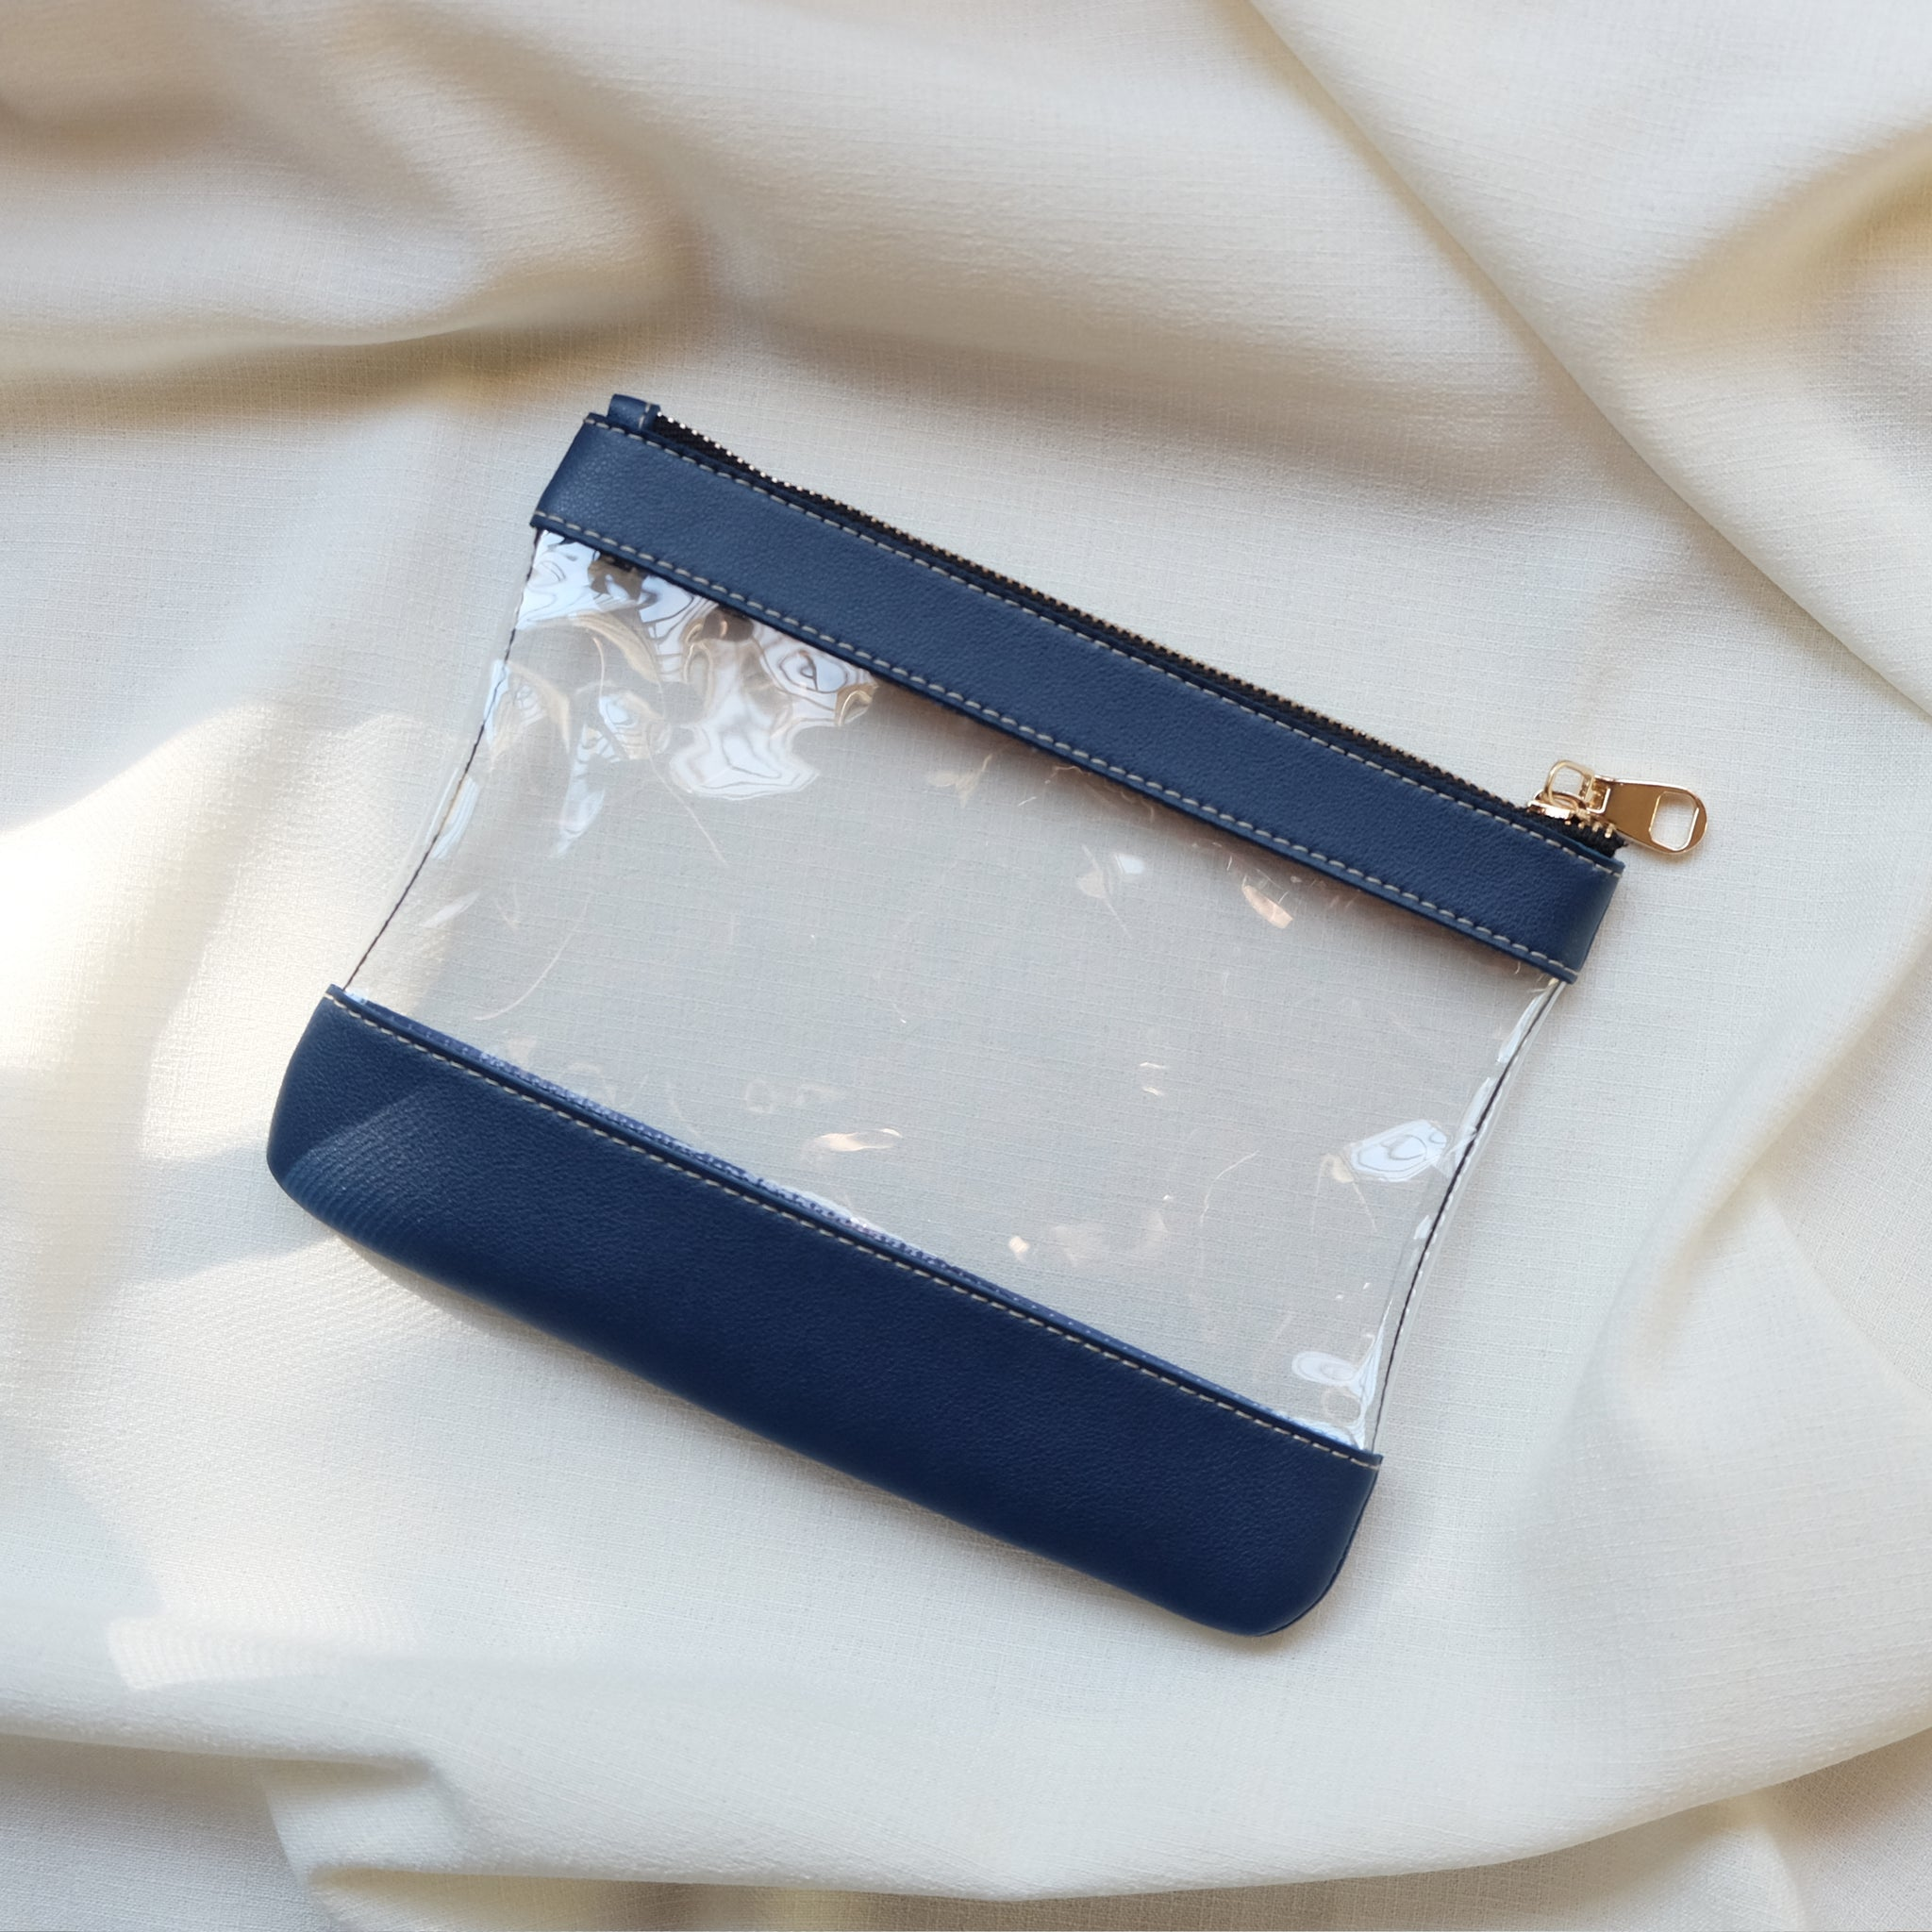 Clarity Pouch in Midnight